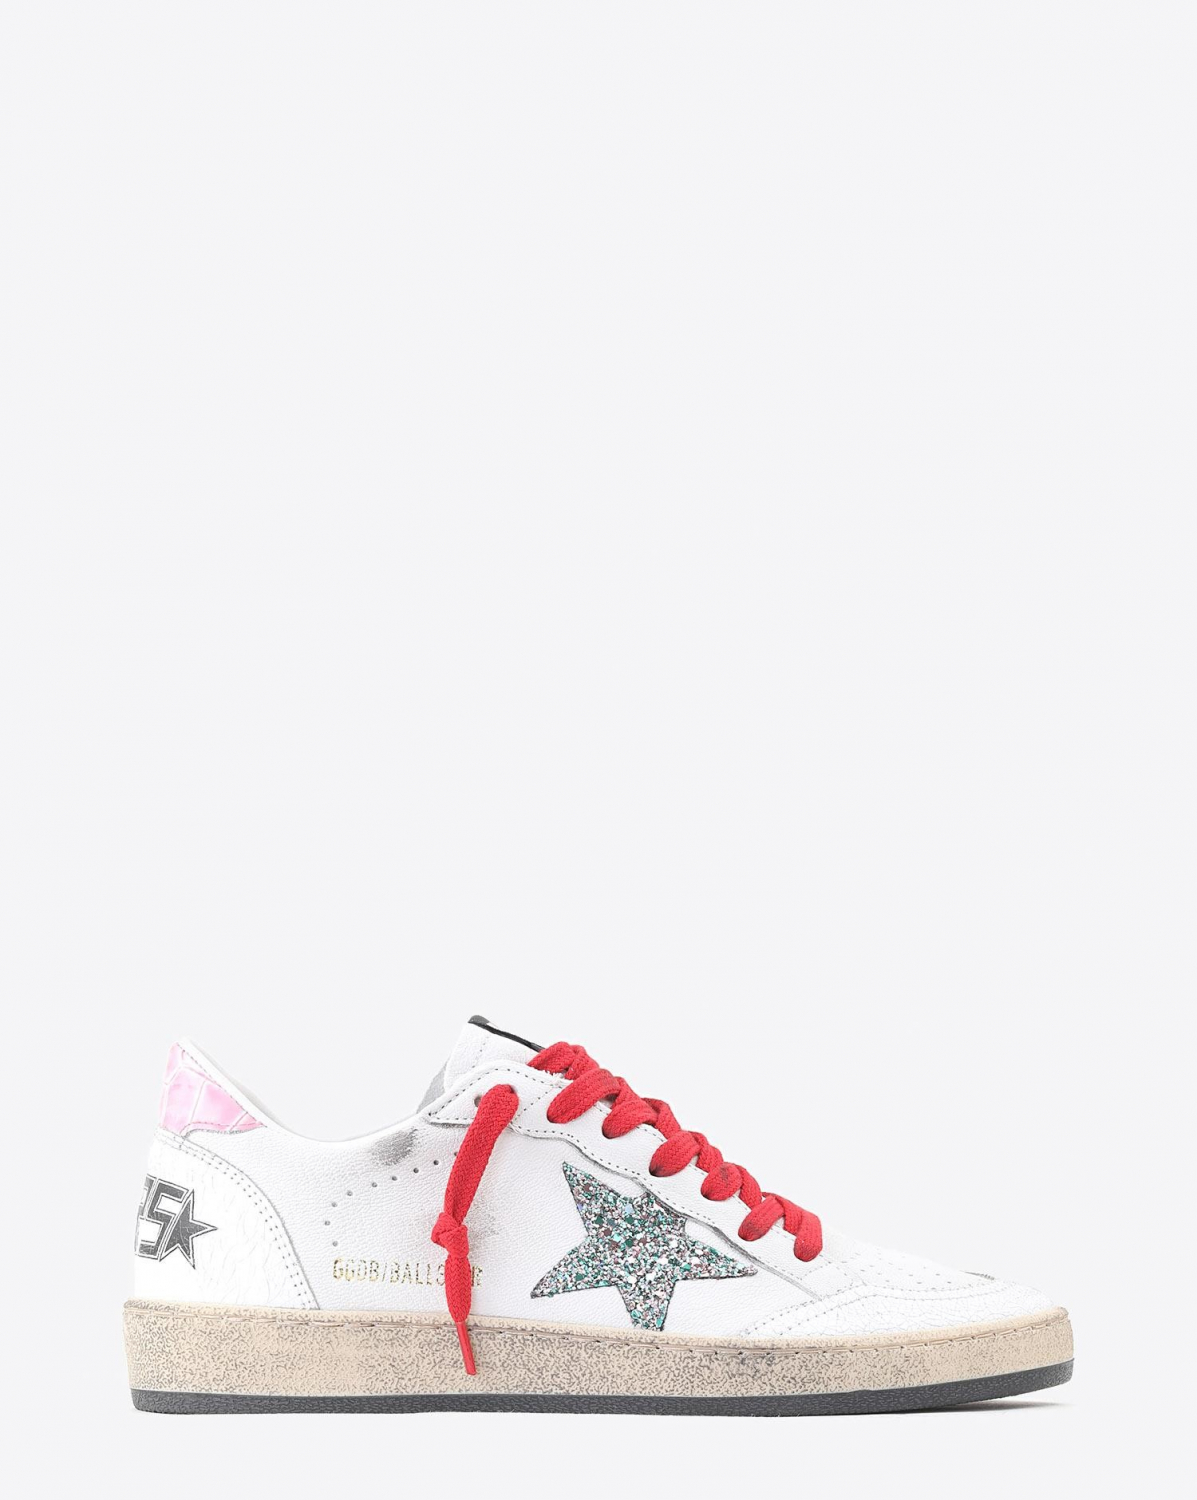 Golden Goose Woman Collection Sneakers Ball Star - White Crack Leather - Pink Cocco - Multi Glitter Star